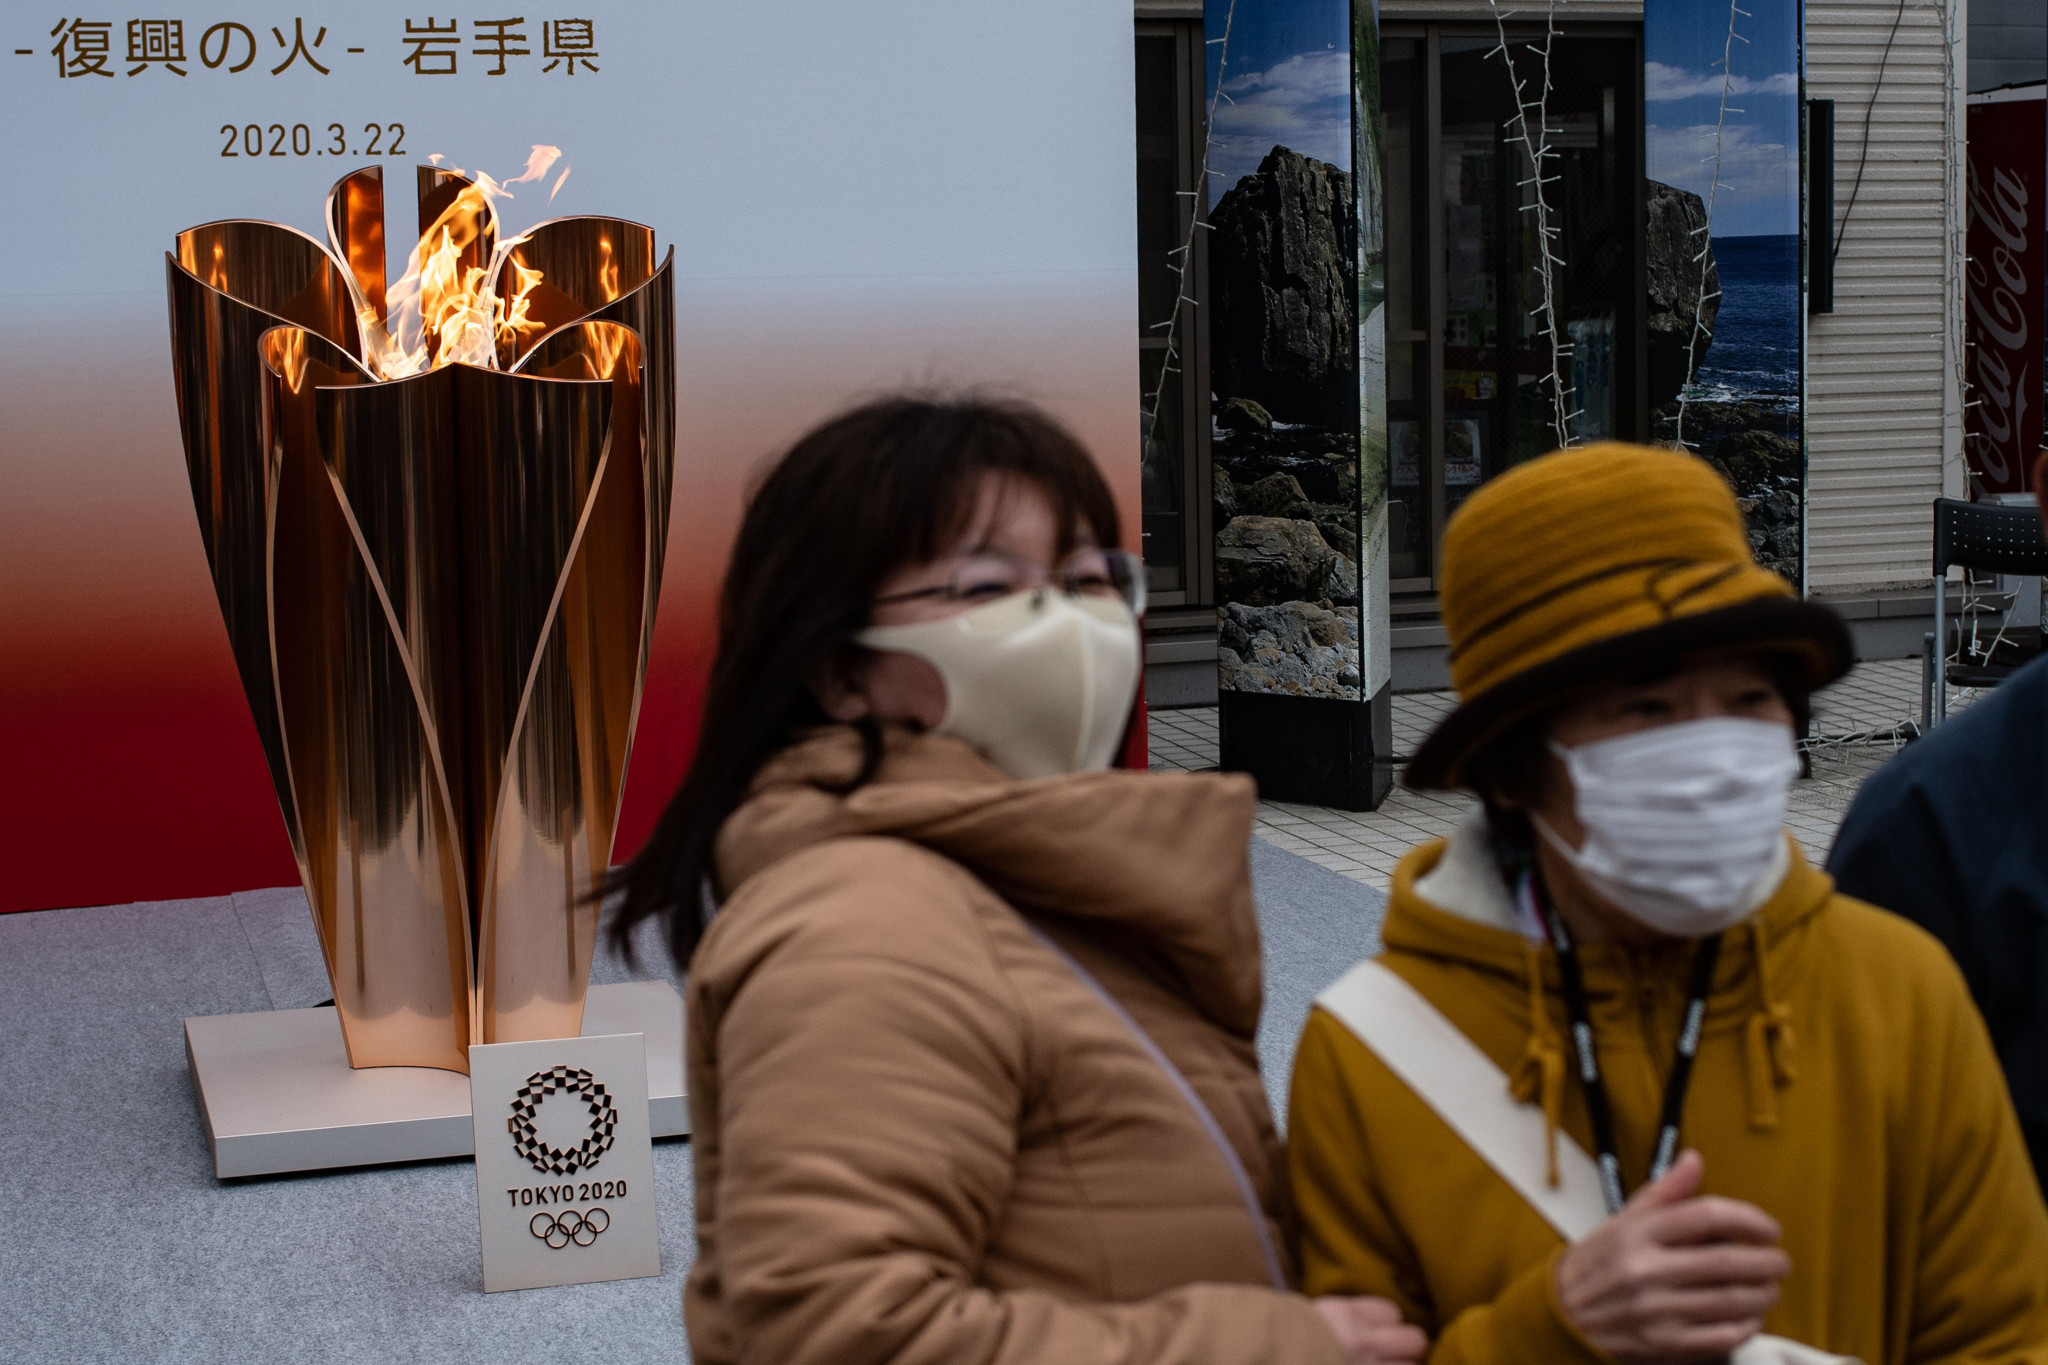 Large crowds viewed the Olympic Flame in Japan this weekend despite coronavirus advice ©Getty Images